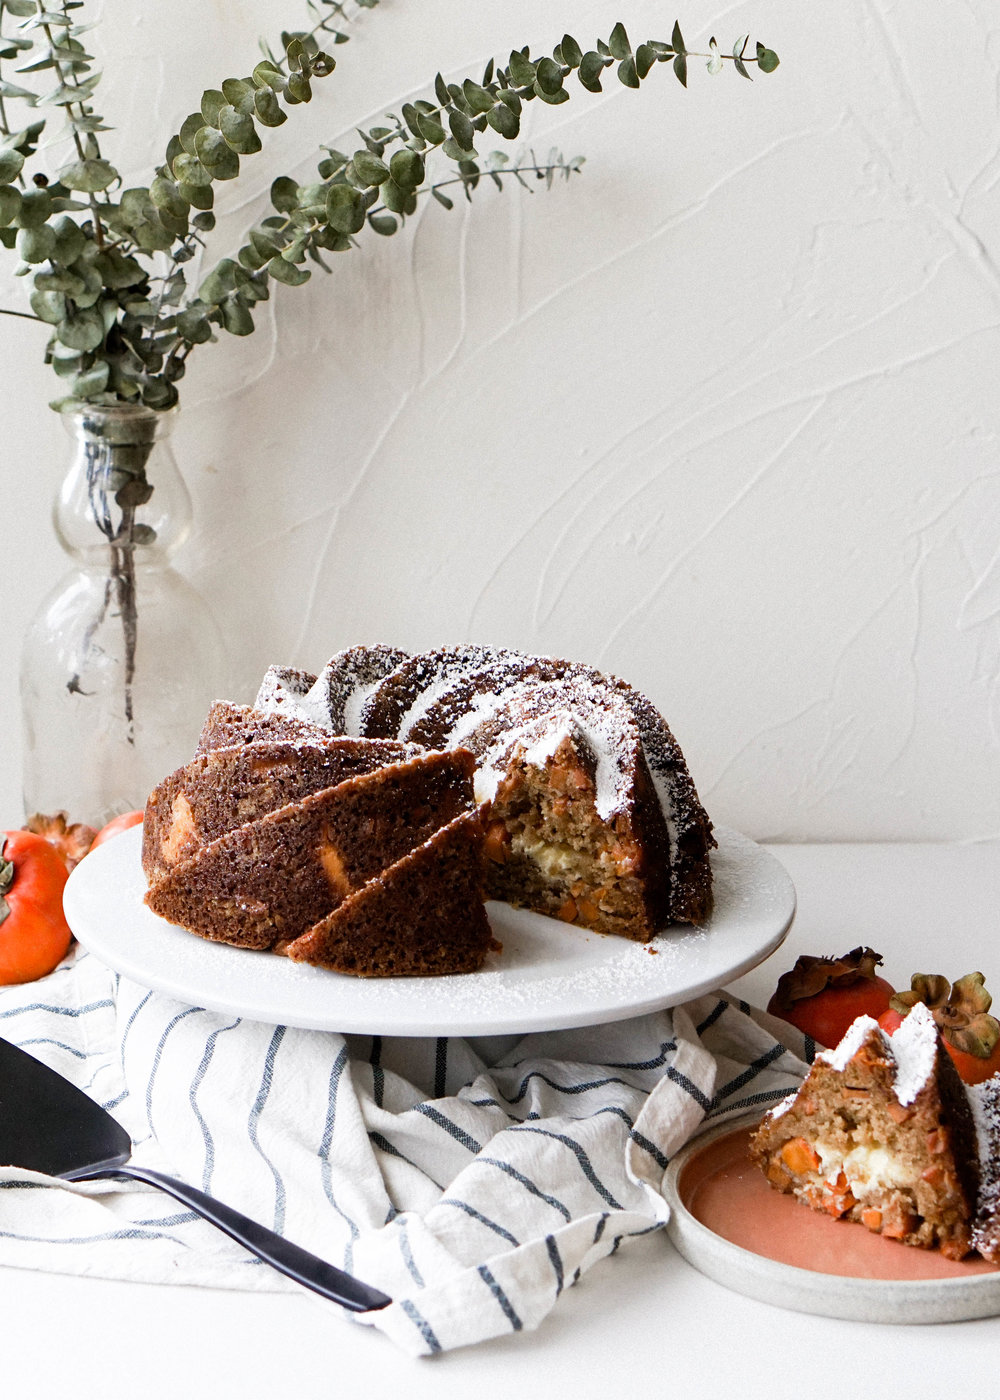 Persimmon and Cream Cheese Bundt Cake